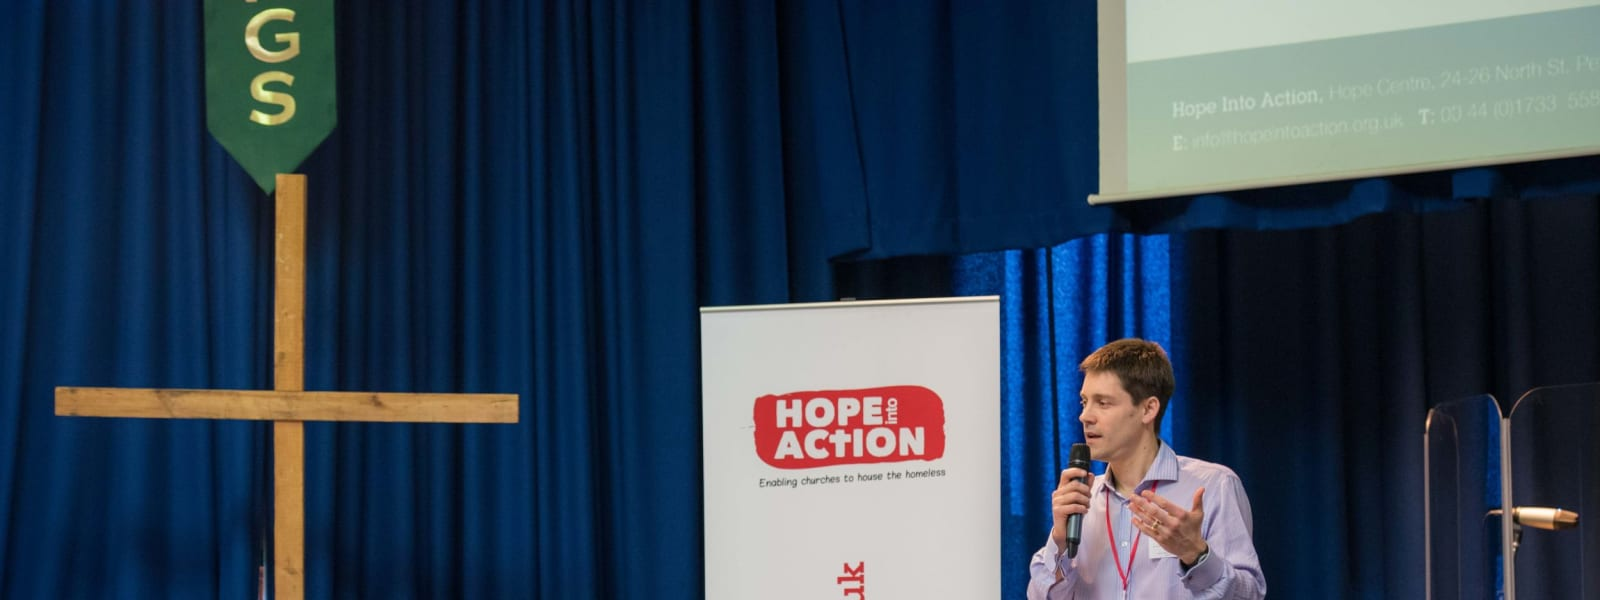 About Hope into Action